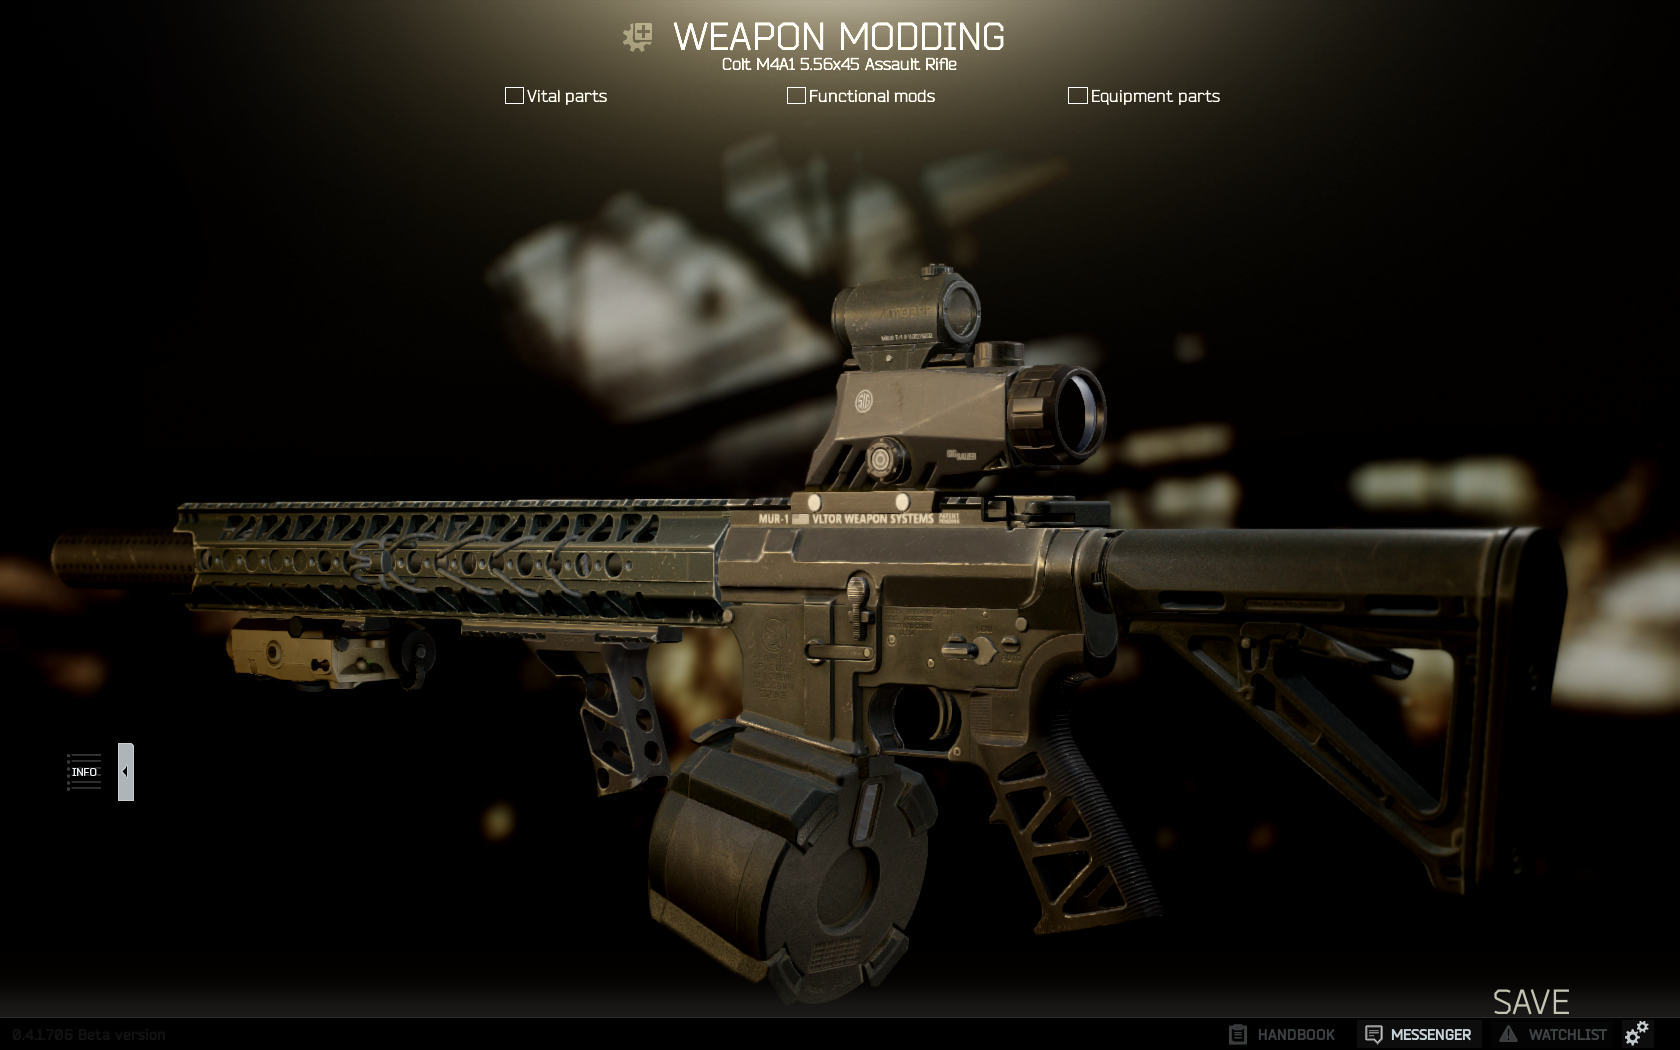 Weapon Modding Thread - Post your custom weapons! - General